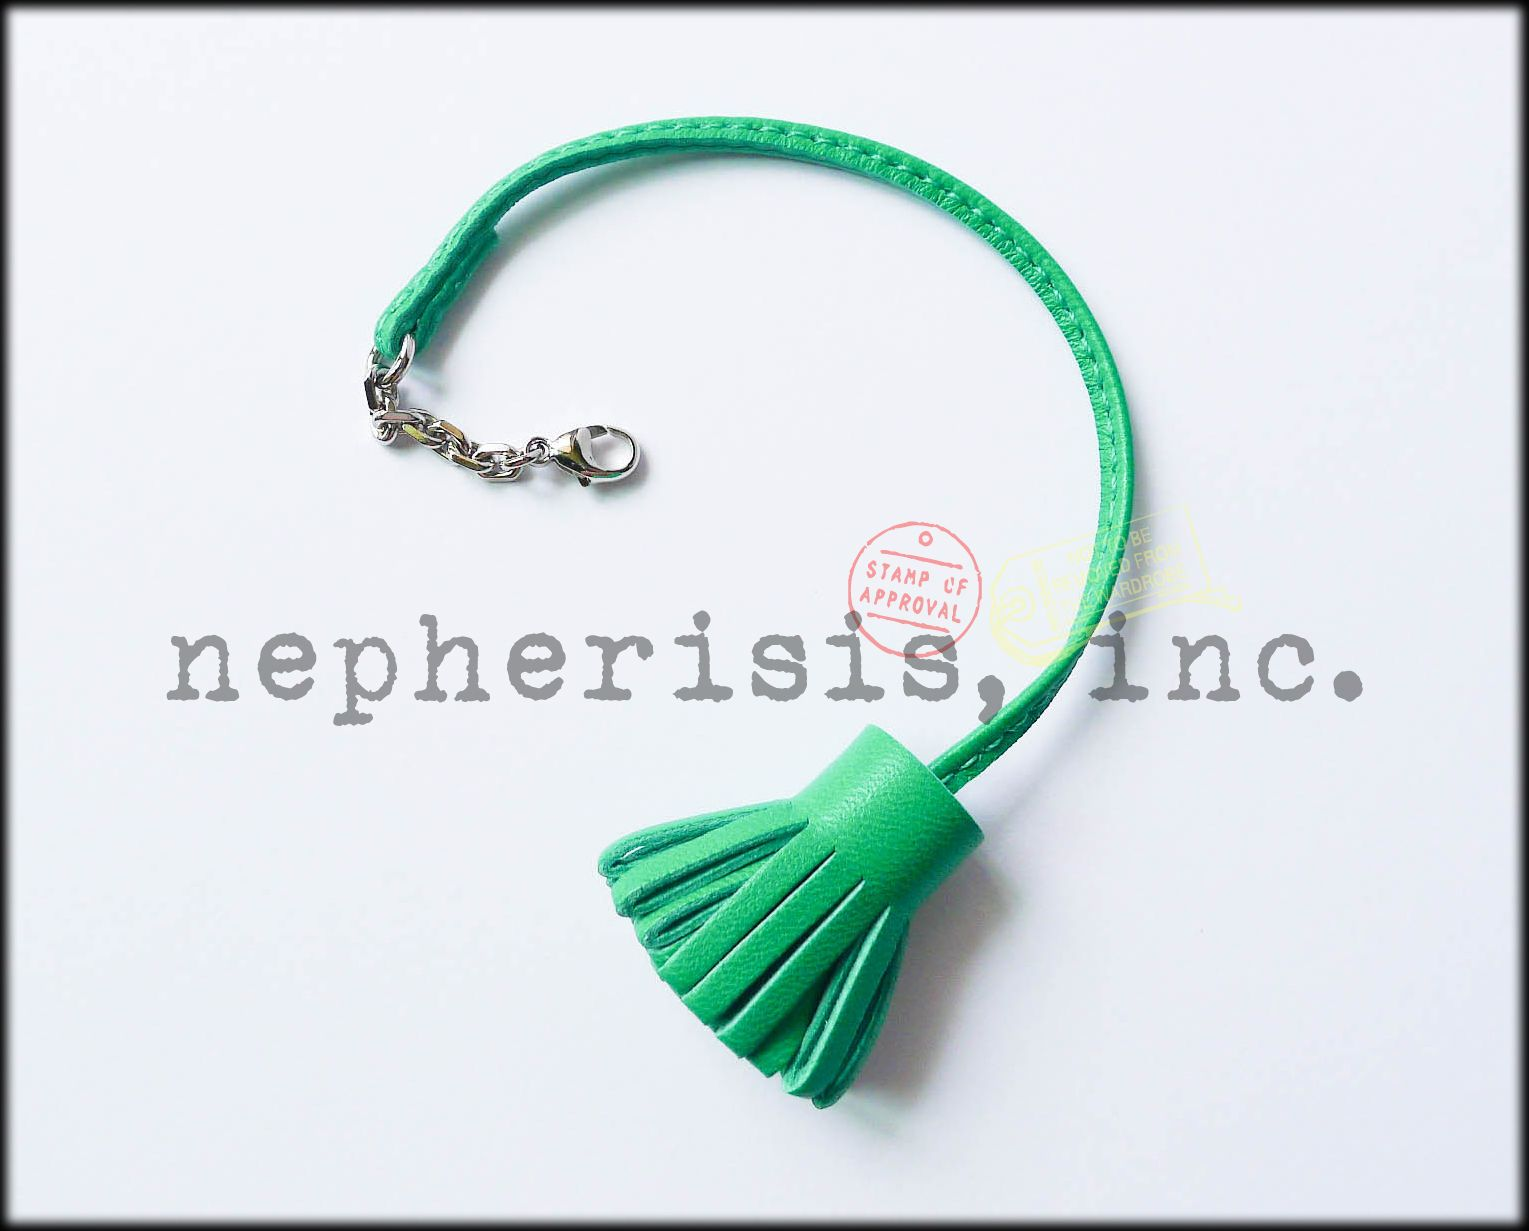 Hermes Carmencita bookmark or bag charm. Color is Menthe. Large size. New condition with Hermes box & ribbon.